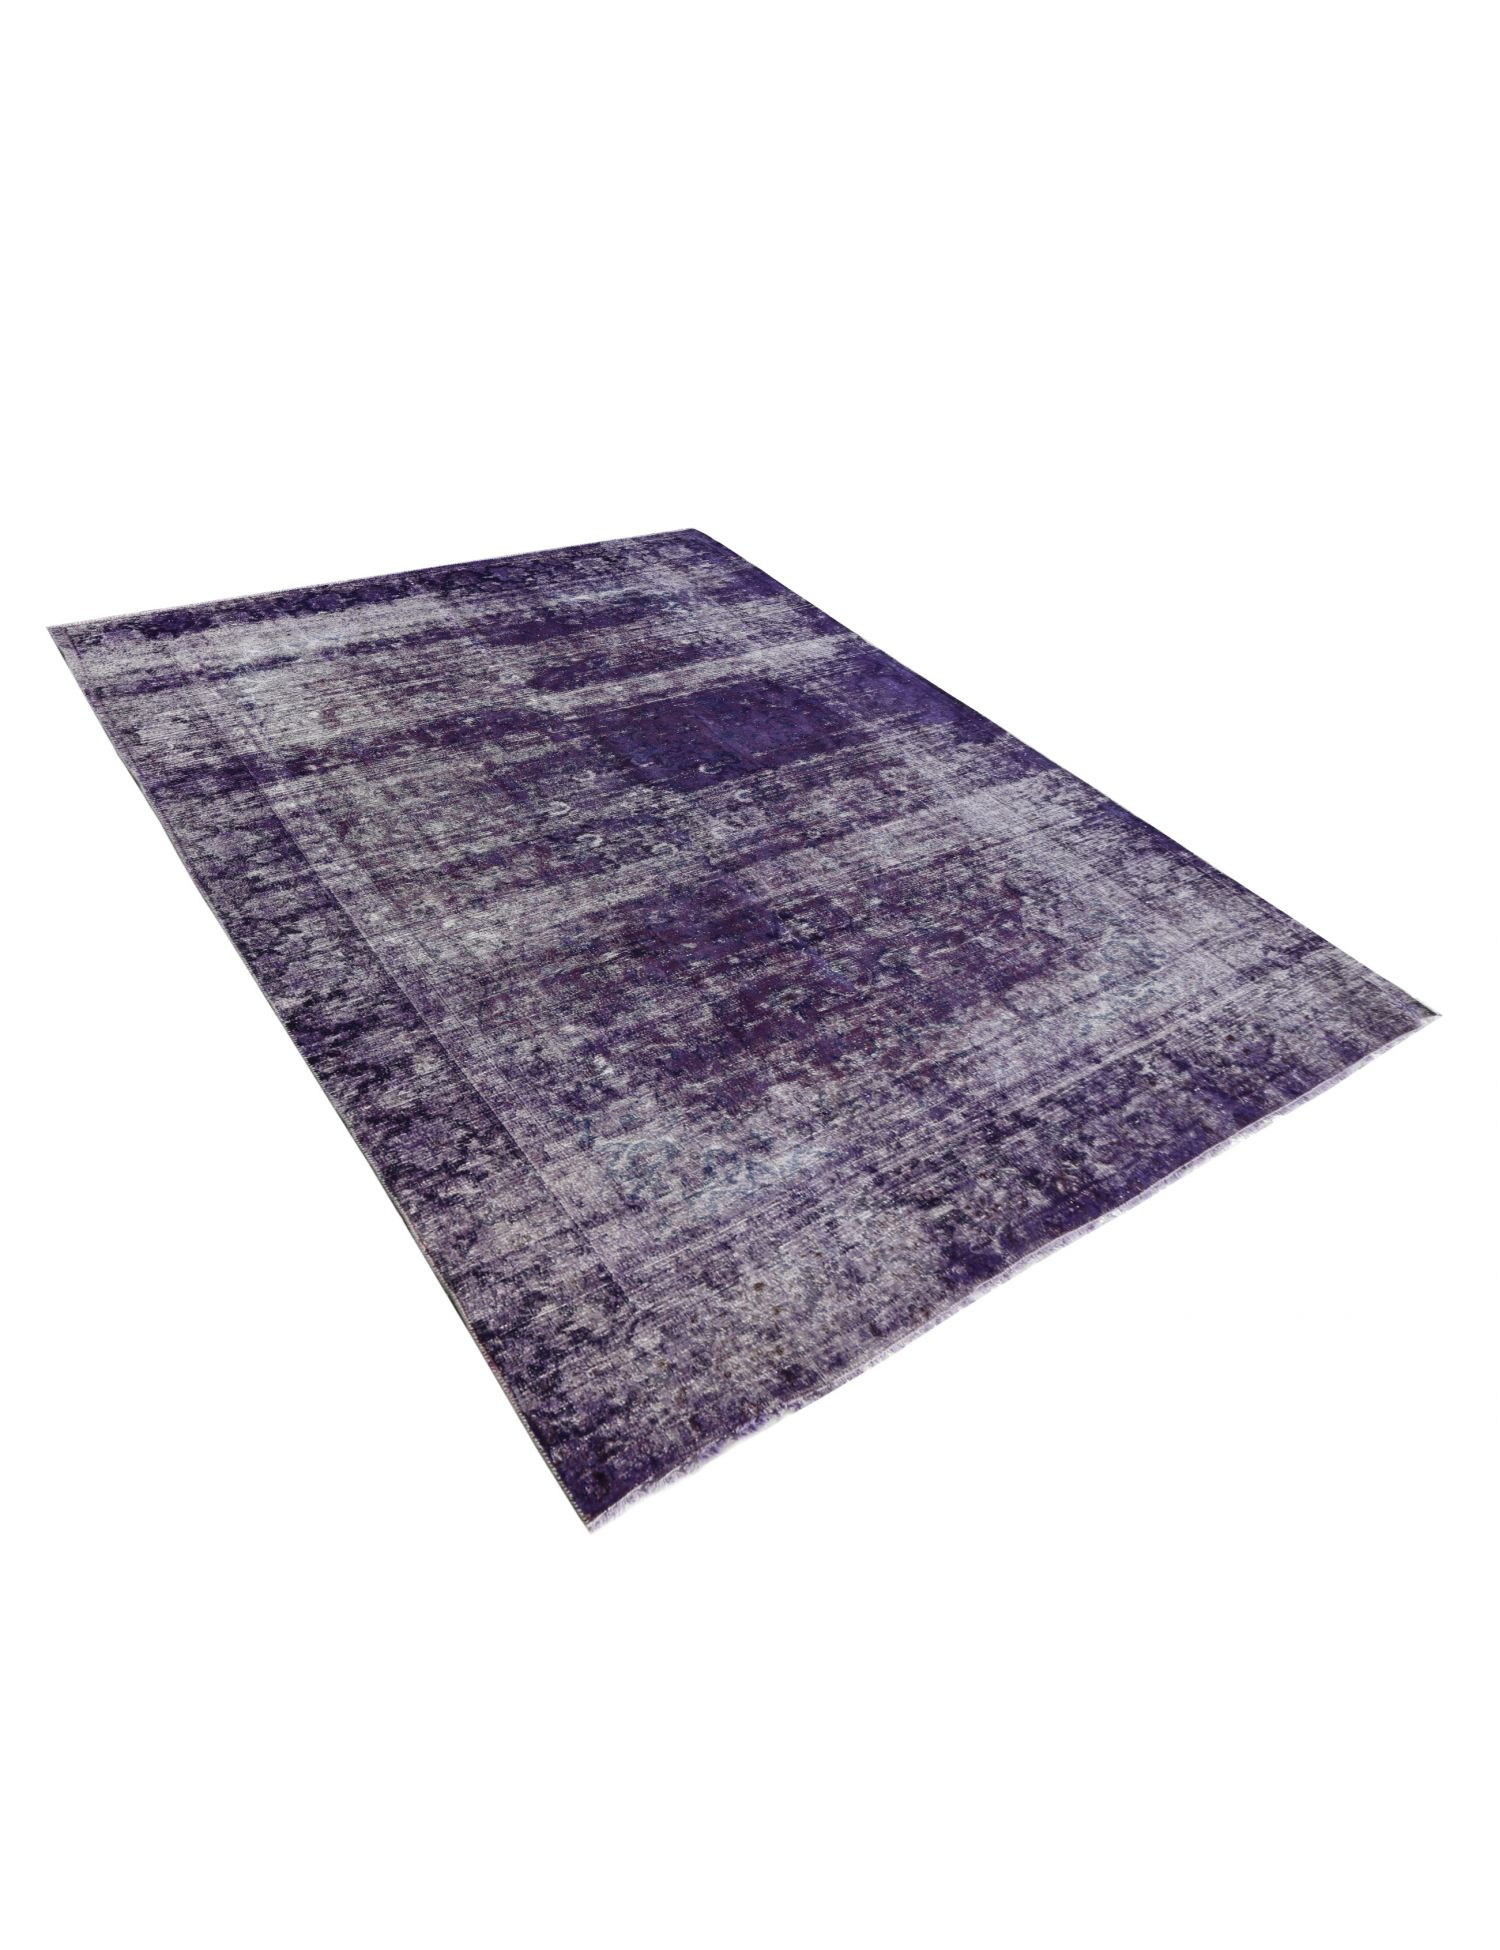 Vintage Carpet  purple <br/>383 x 272 cm